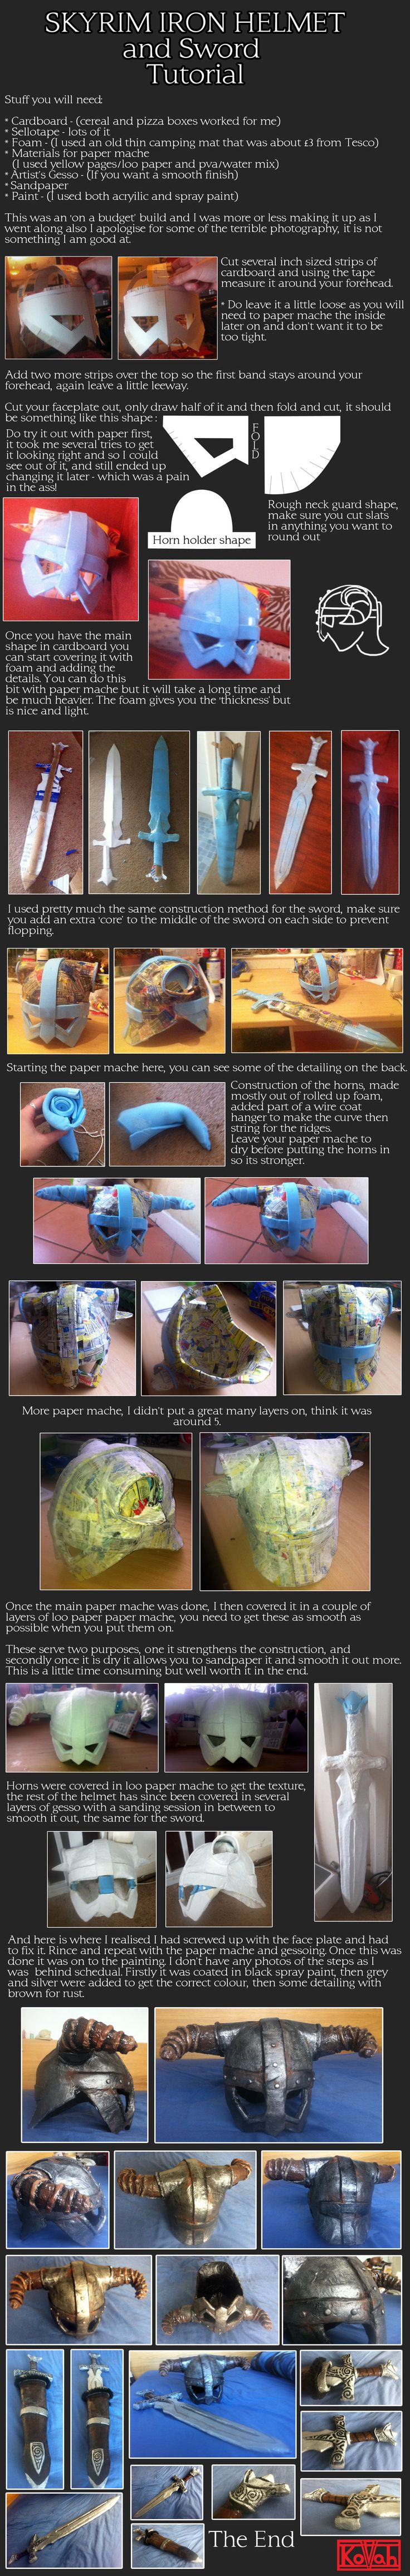 Iron Helmet and Sword cosplay tutorial by ~kovah on deviantART (because I do want to do a Skyrim costume someday... when I have time to complete at least the main quest line)